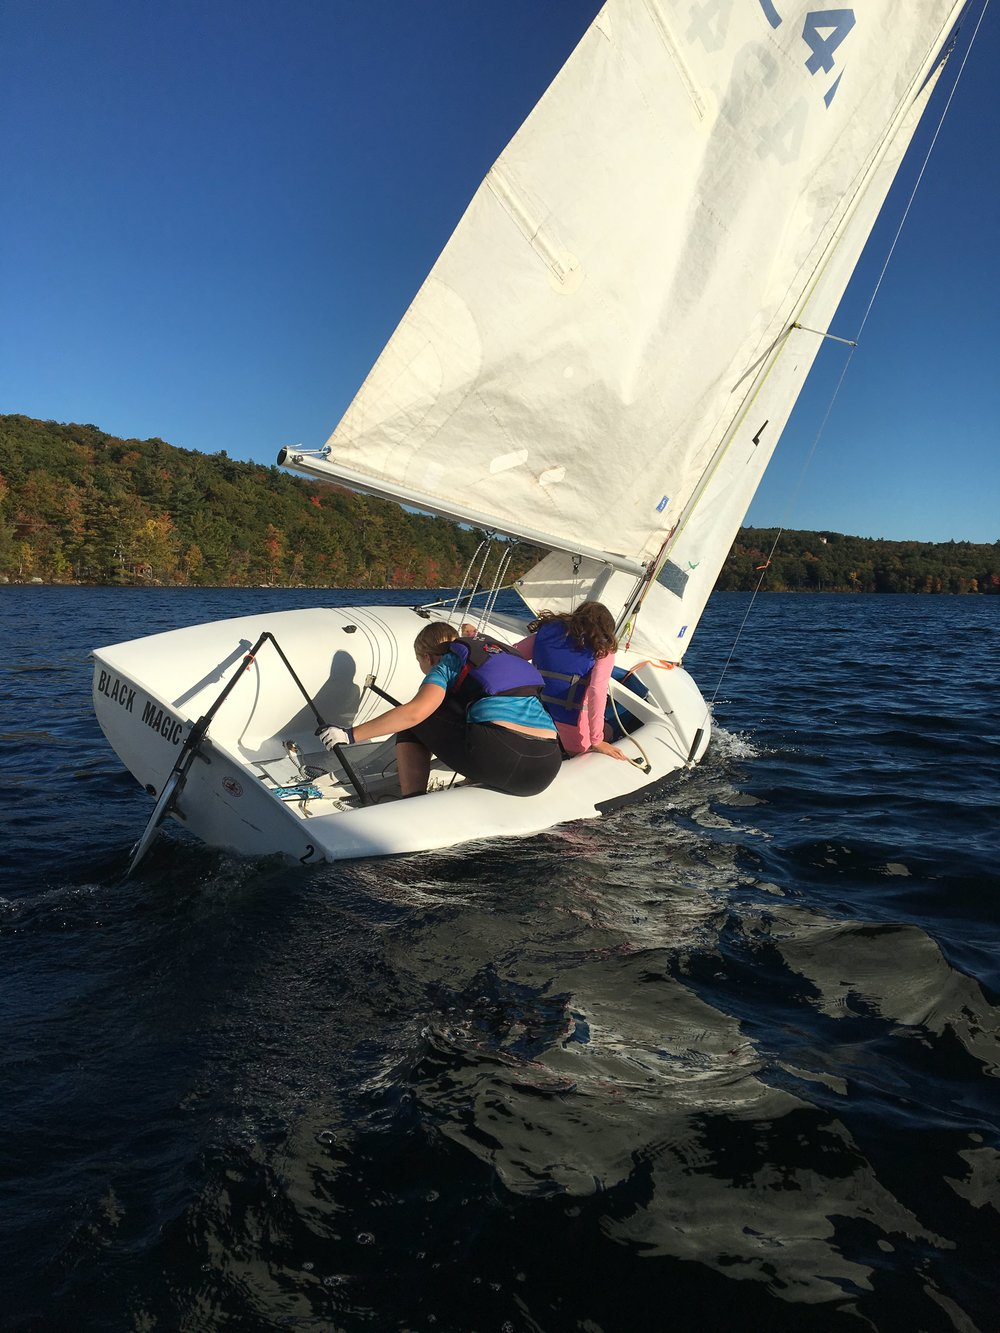 Within easy coaching distance in front of the motorboat, Taya and Rebecca work on a roll tack.